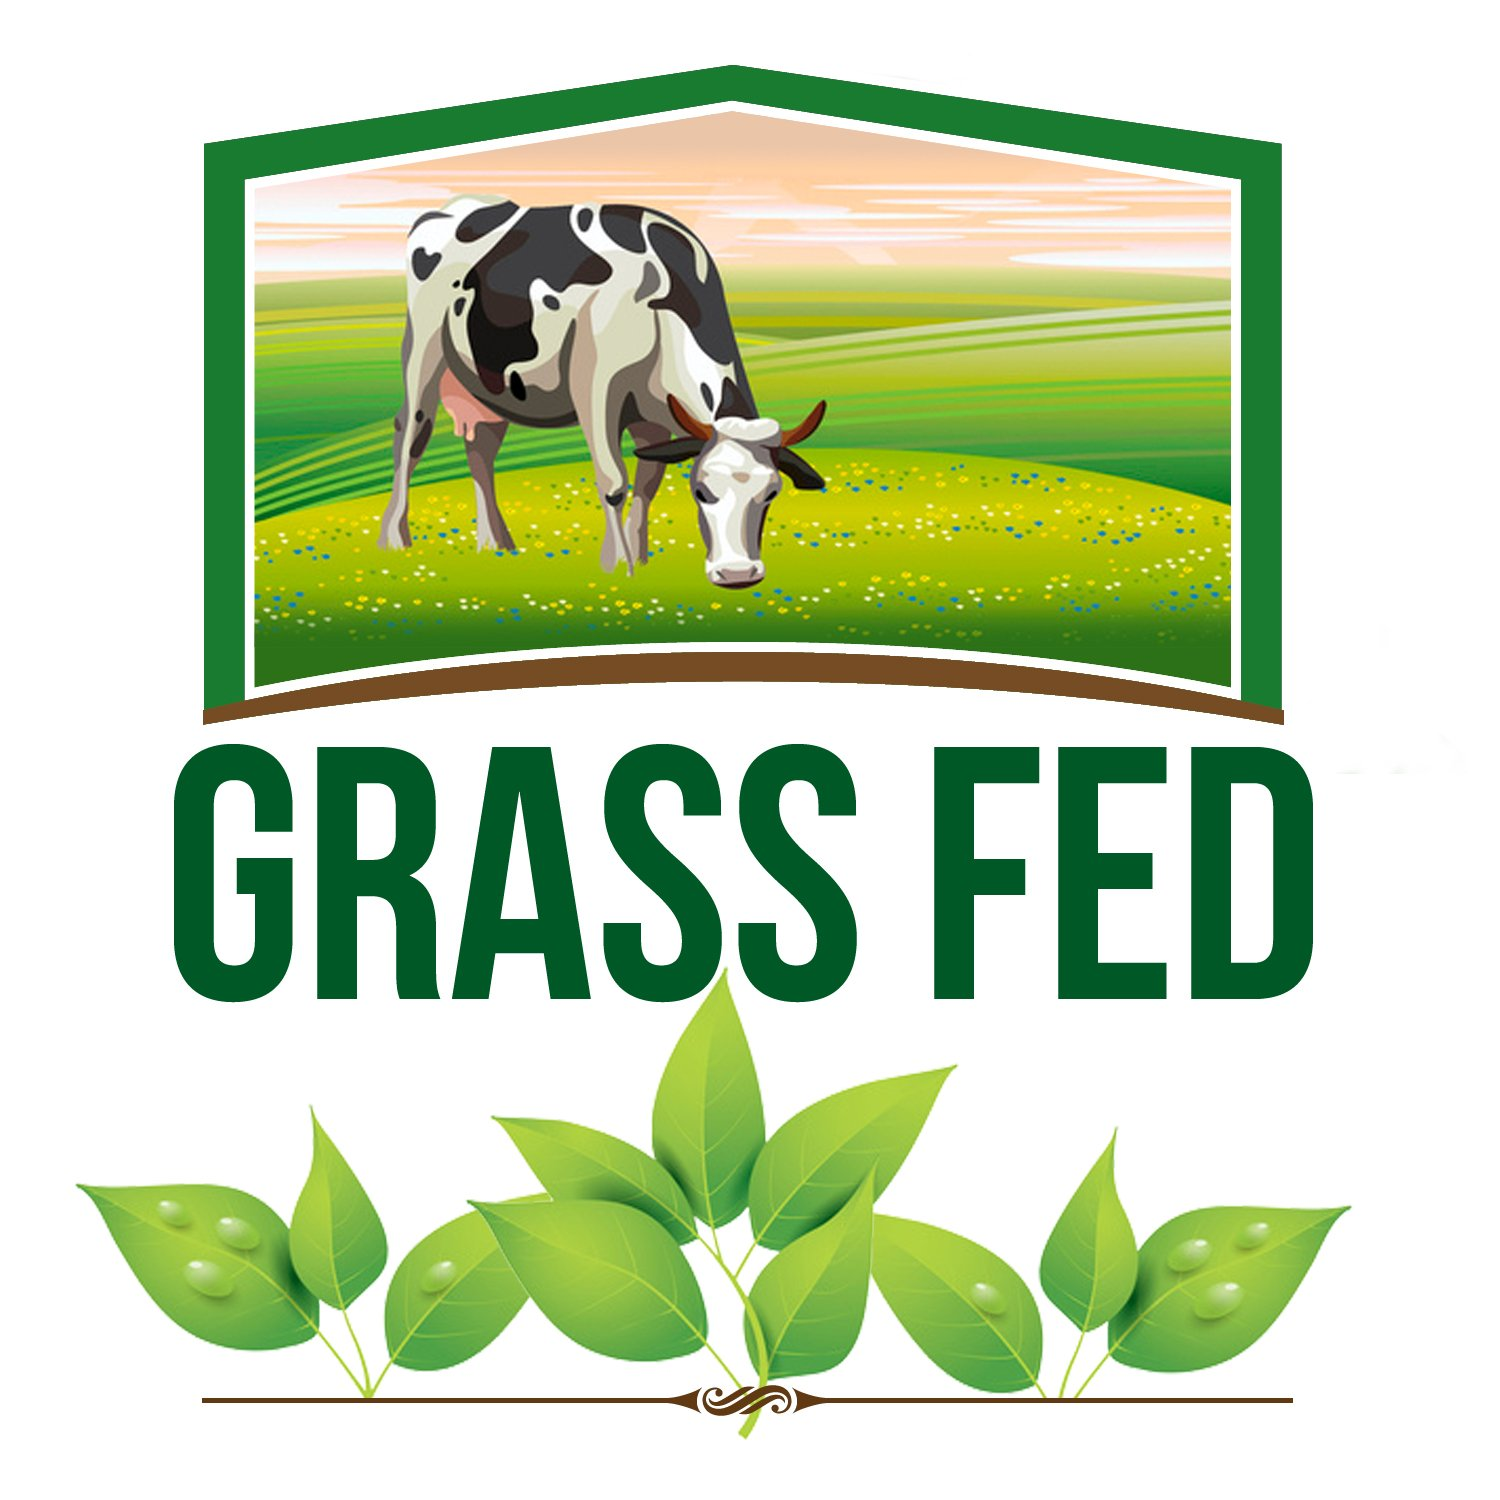 Tasty Superfoods Grass Fed Organic Ghee - Glass Jar of Pure, Unsalted Clarified Butter from Grass-Fed Cows - Best Healthy Oil for Indian Cooking, in Coffee, or for diets like Paleo and Whole30 (16oz) by Tasty Superfoods (Image #3)